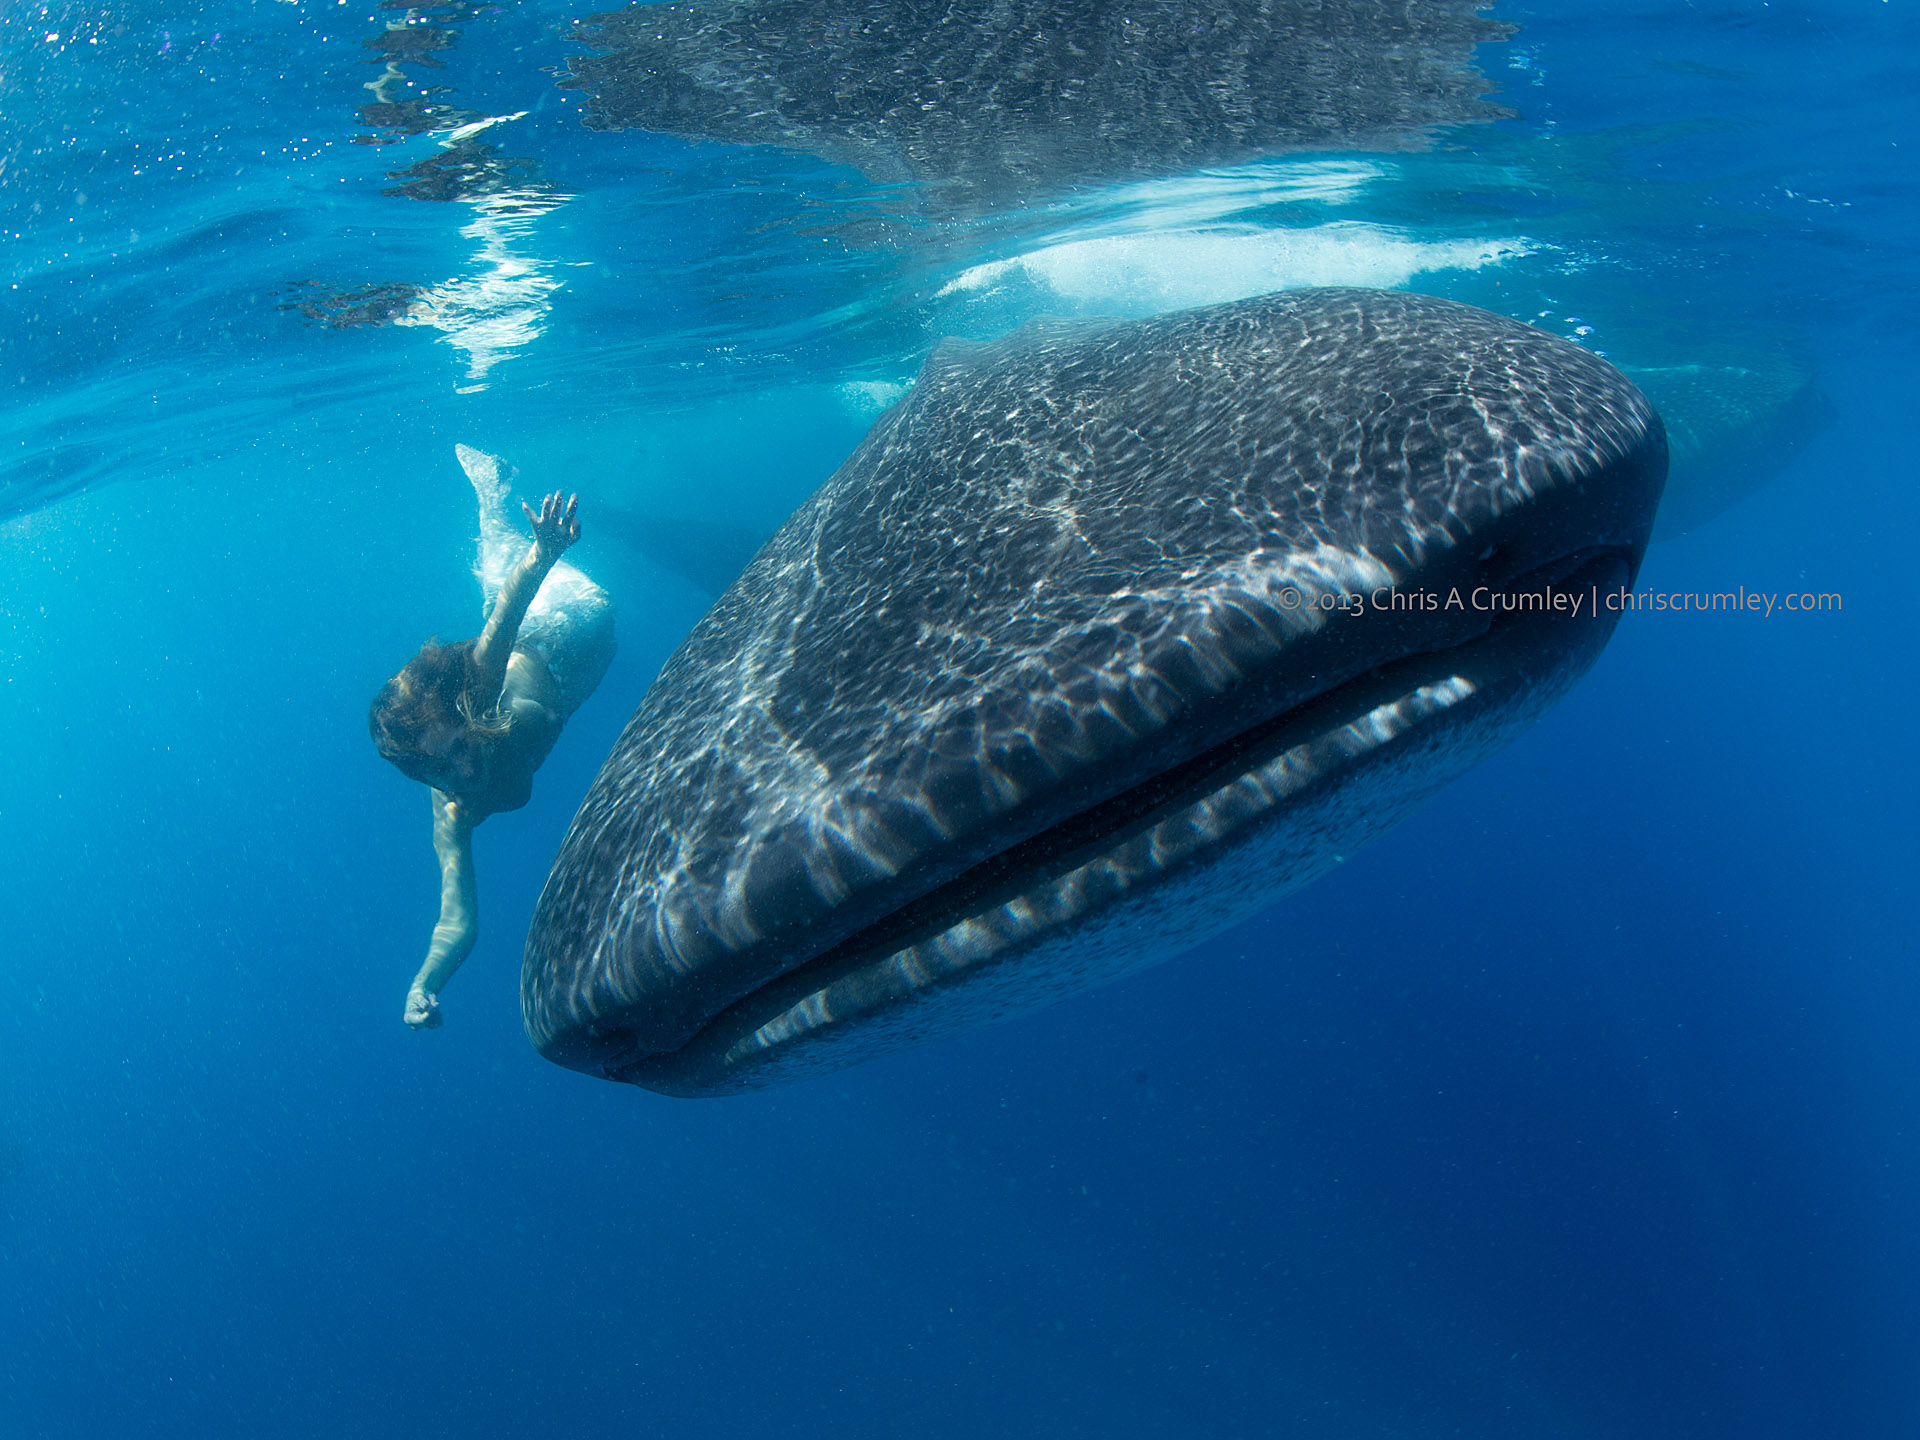 Mermaid Sydney Raye Smith and the Whale Shark